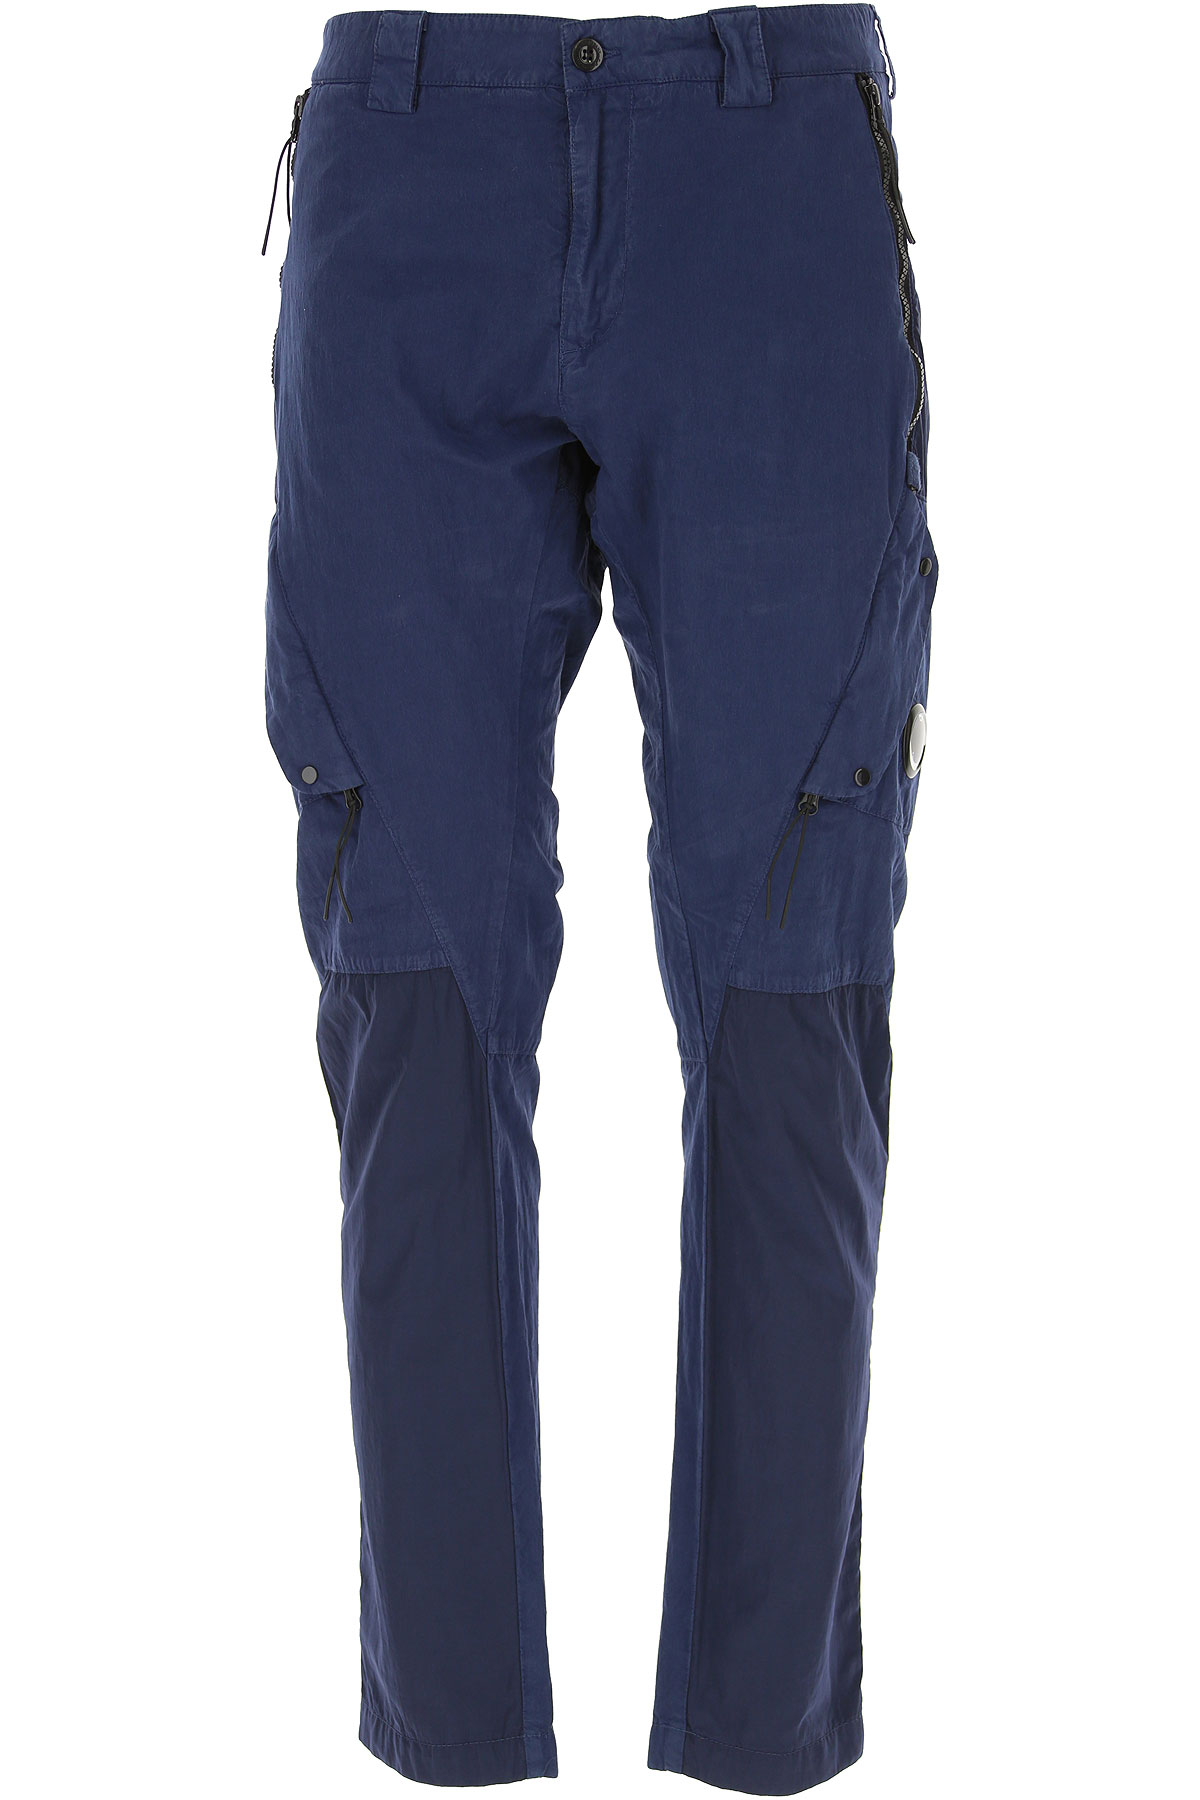 C.P. Company Pants for Men On Sale, Navy Blue, Cotton, 2019, 32 34 36